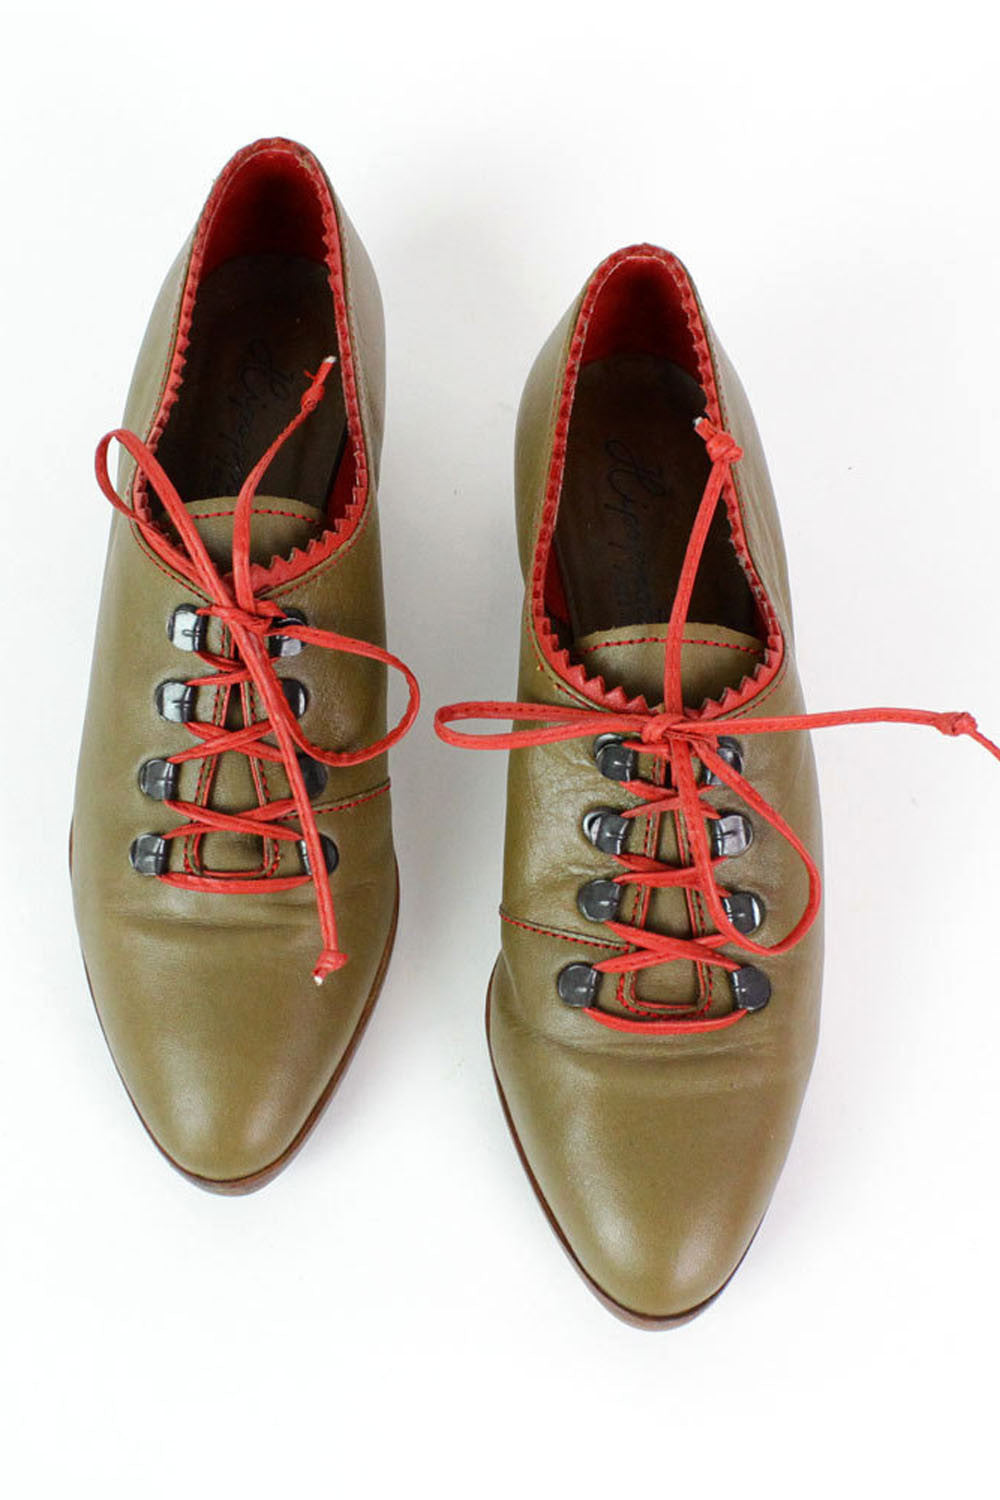 Olive & Red Leather Oxfords 7.5